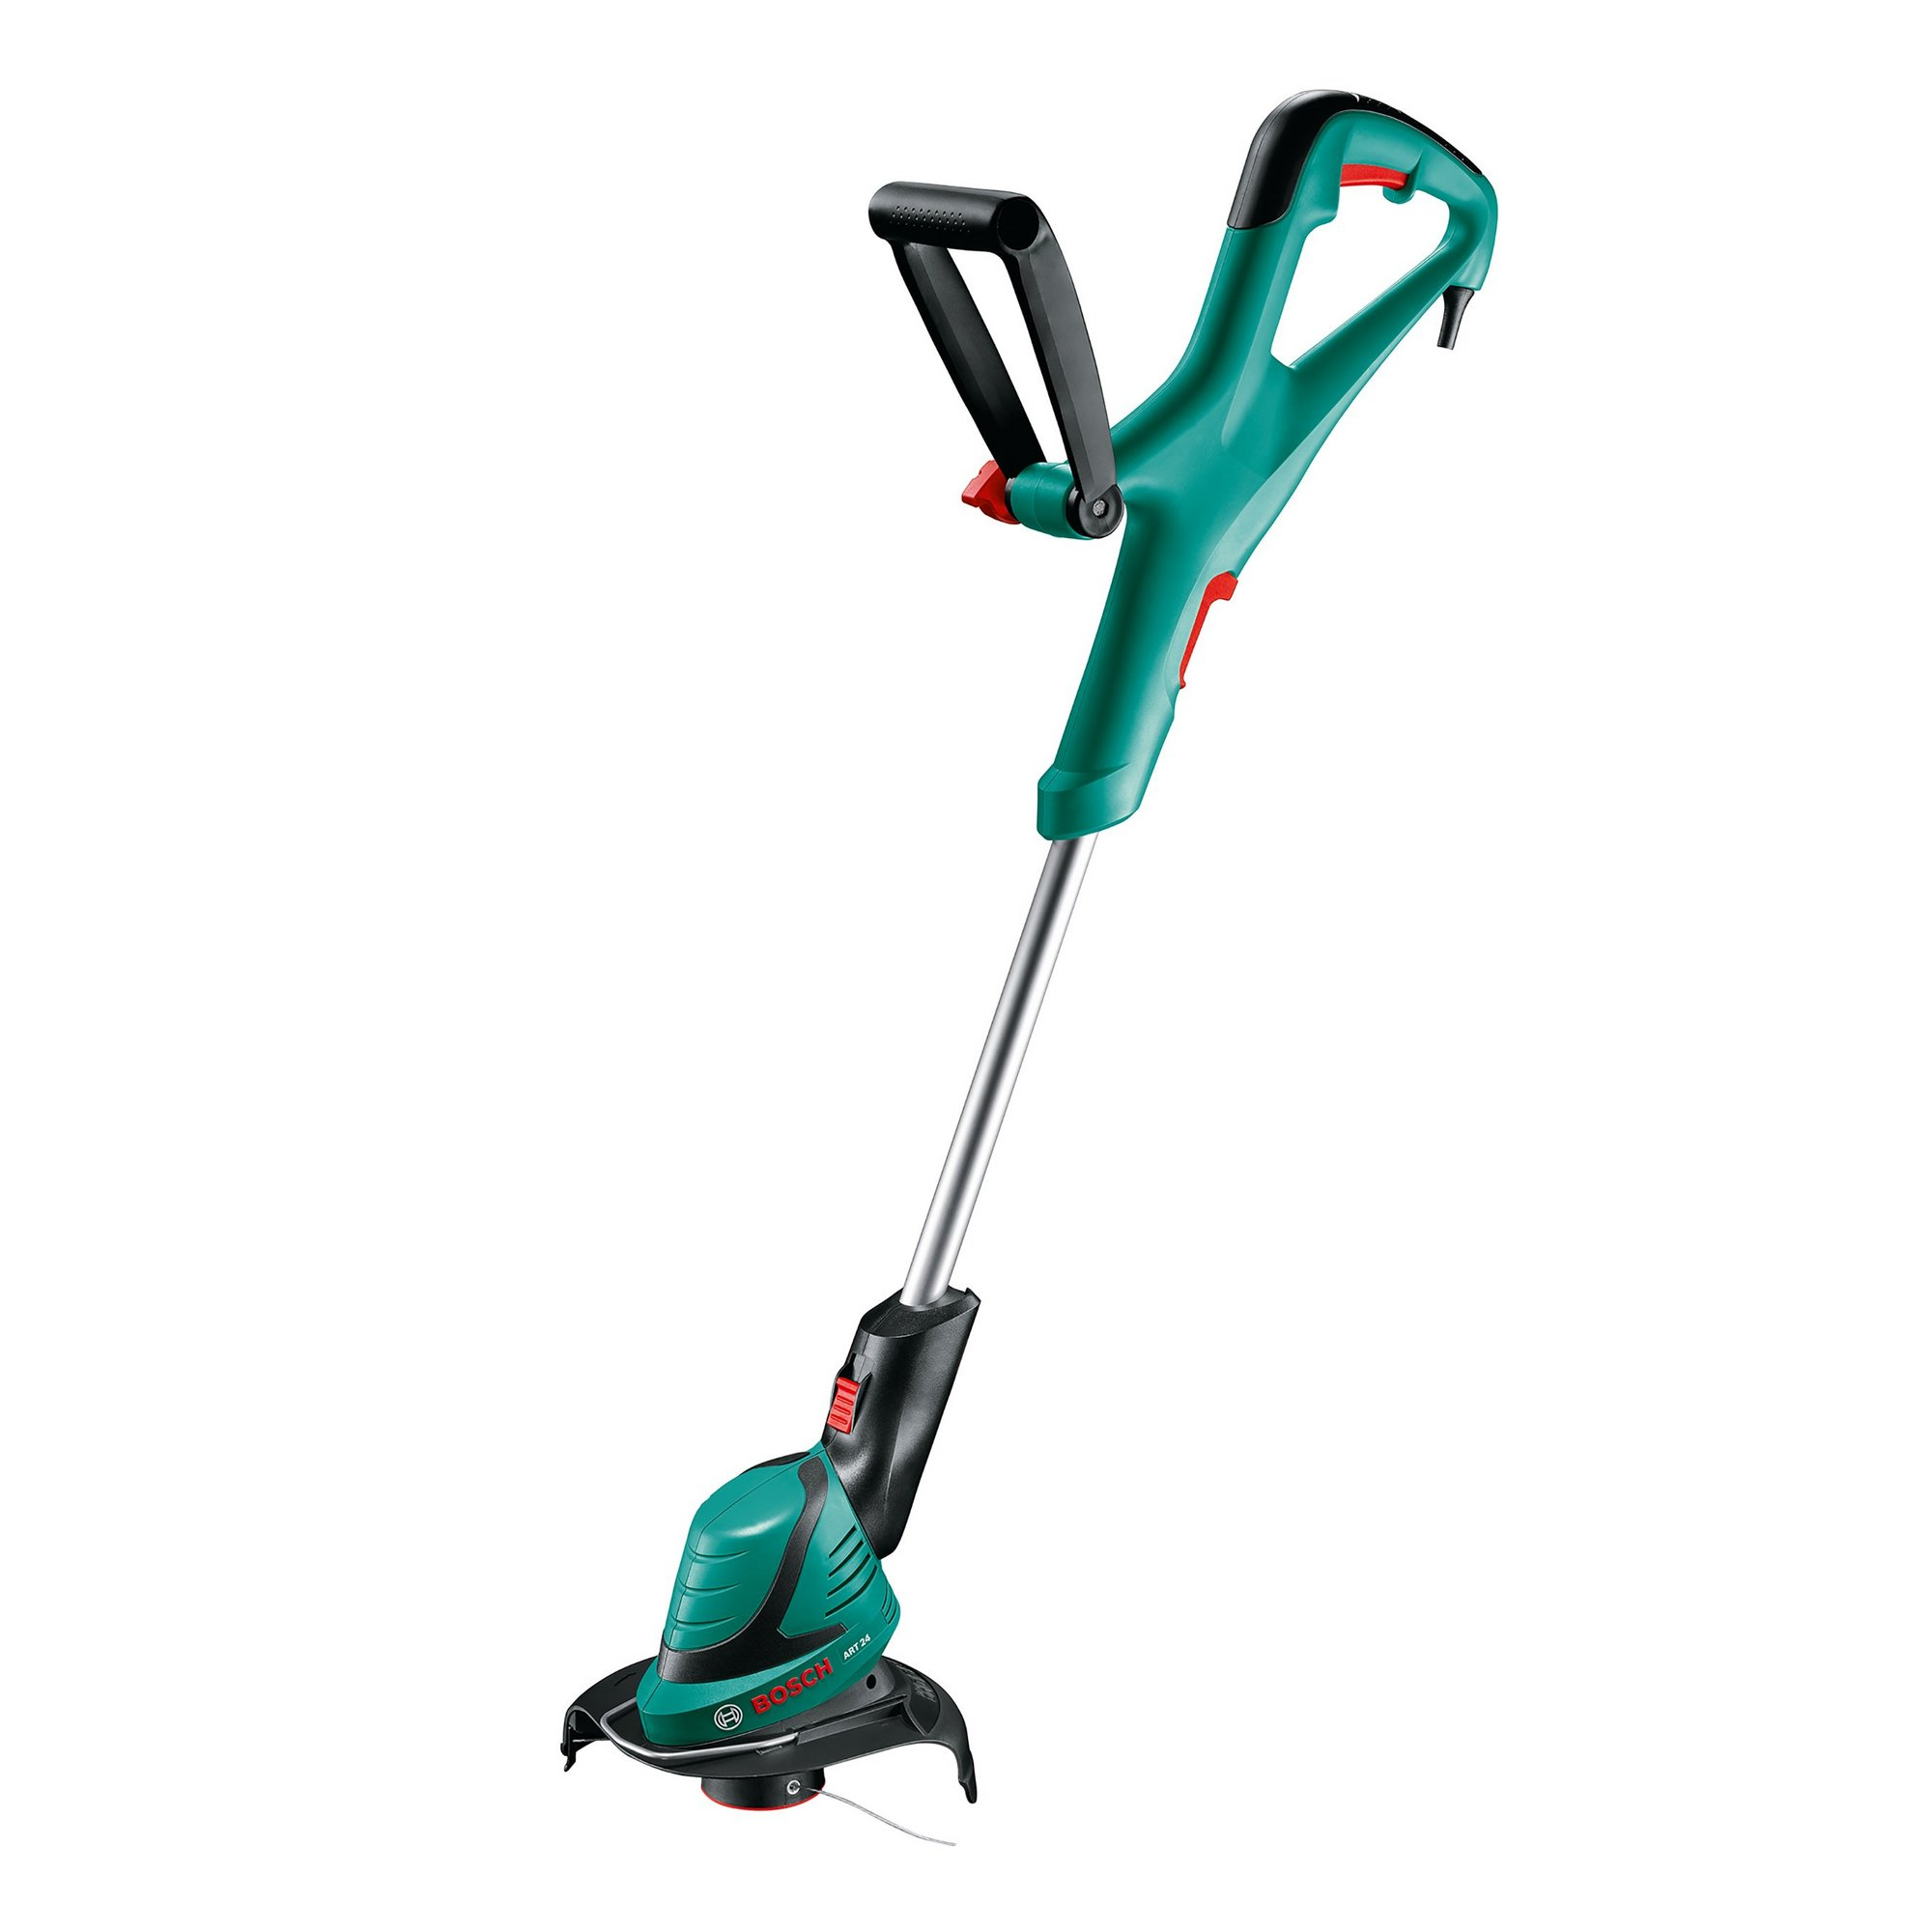 Image of Bosch ART 24 Electric Line Trimmer